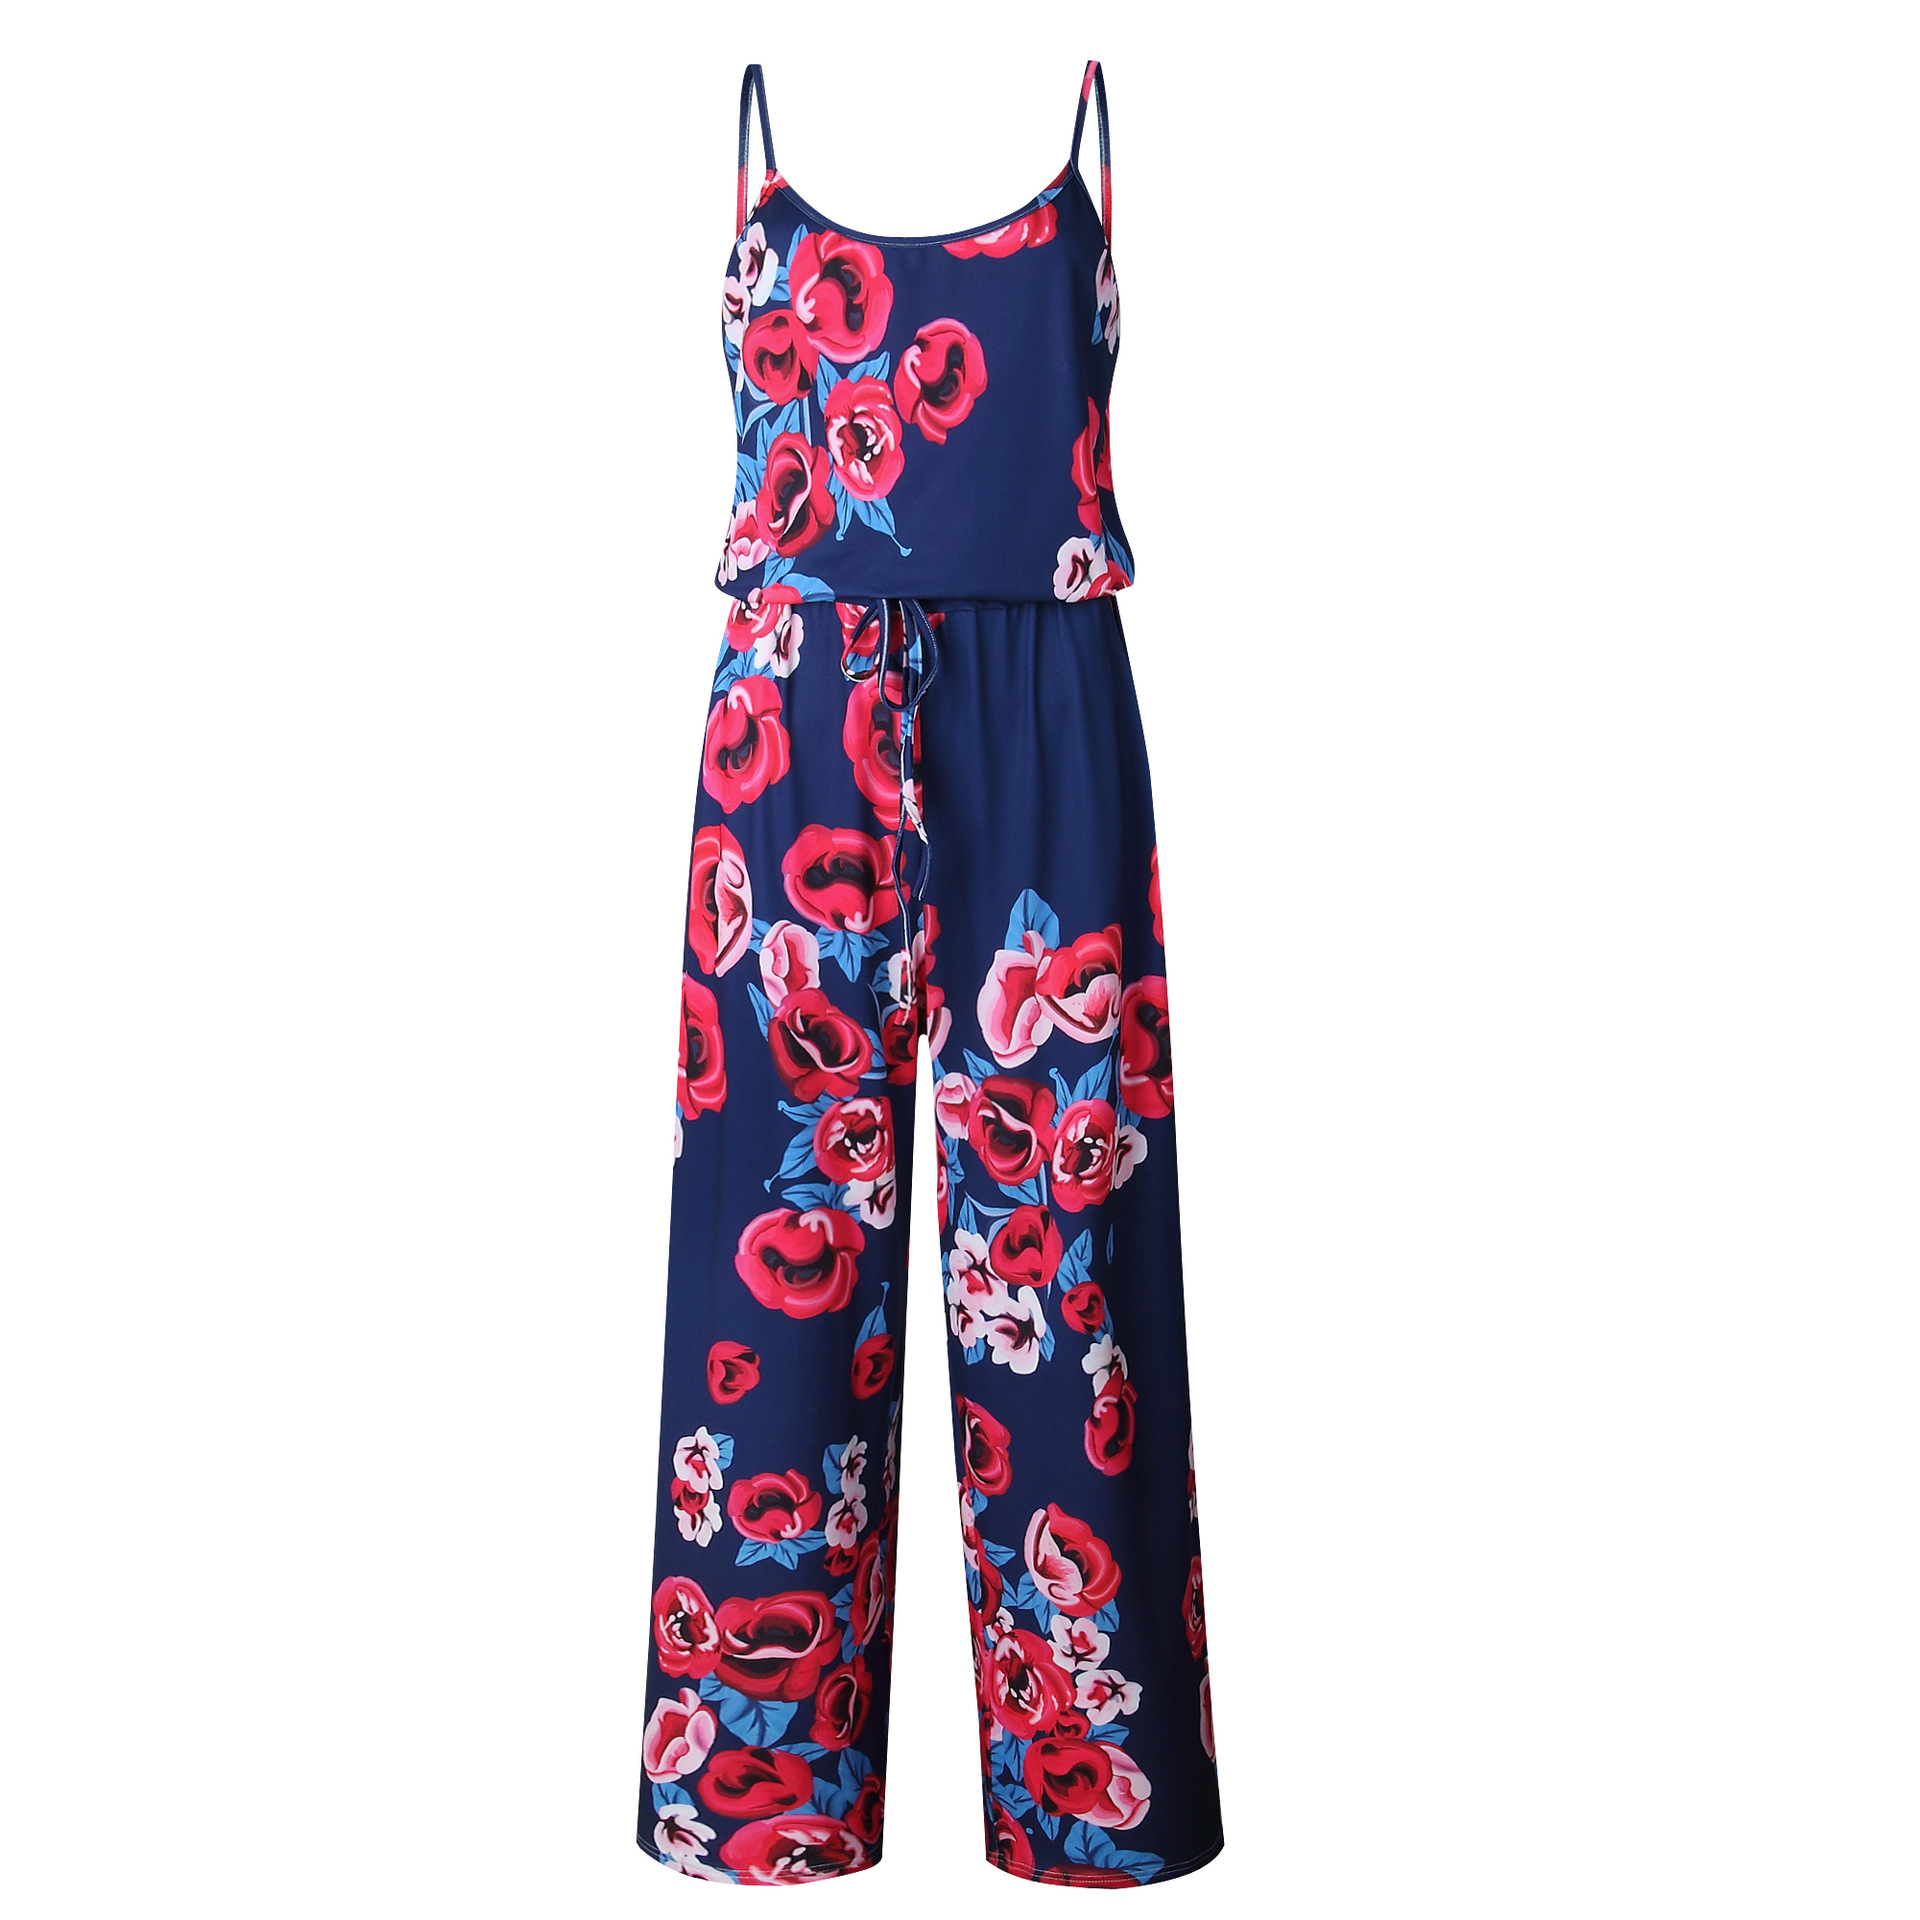 Spaghetti Strap Jumpsuit Women 2018 Summer Long Pants Floral Print Rompers Beach Casual Jumpsuits Sleeveless Sashes Playsuits 49